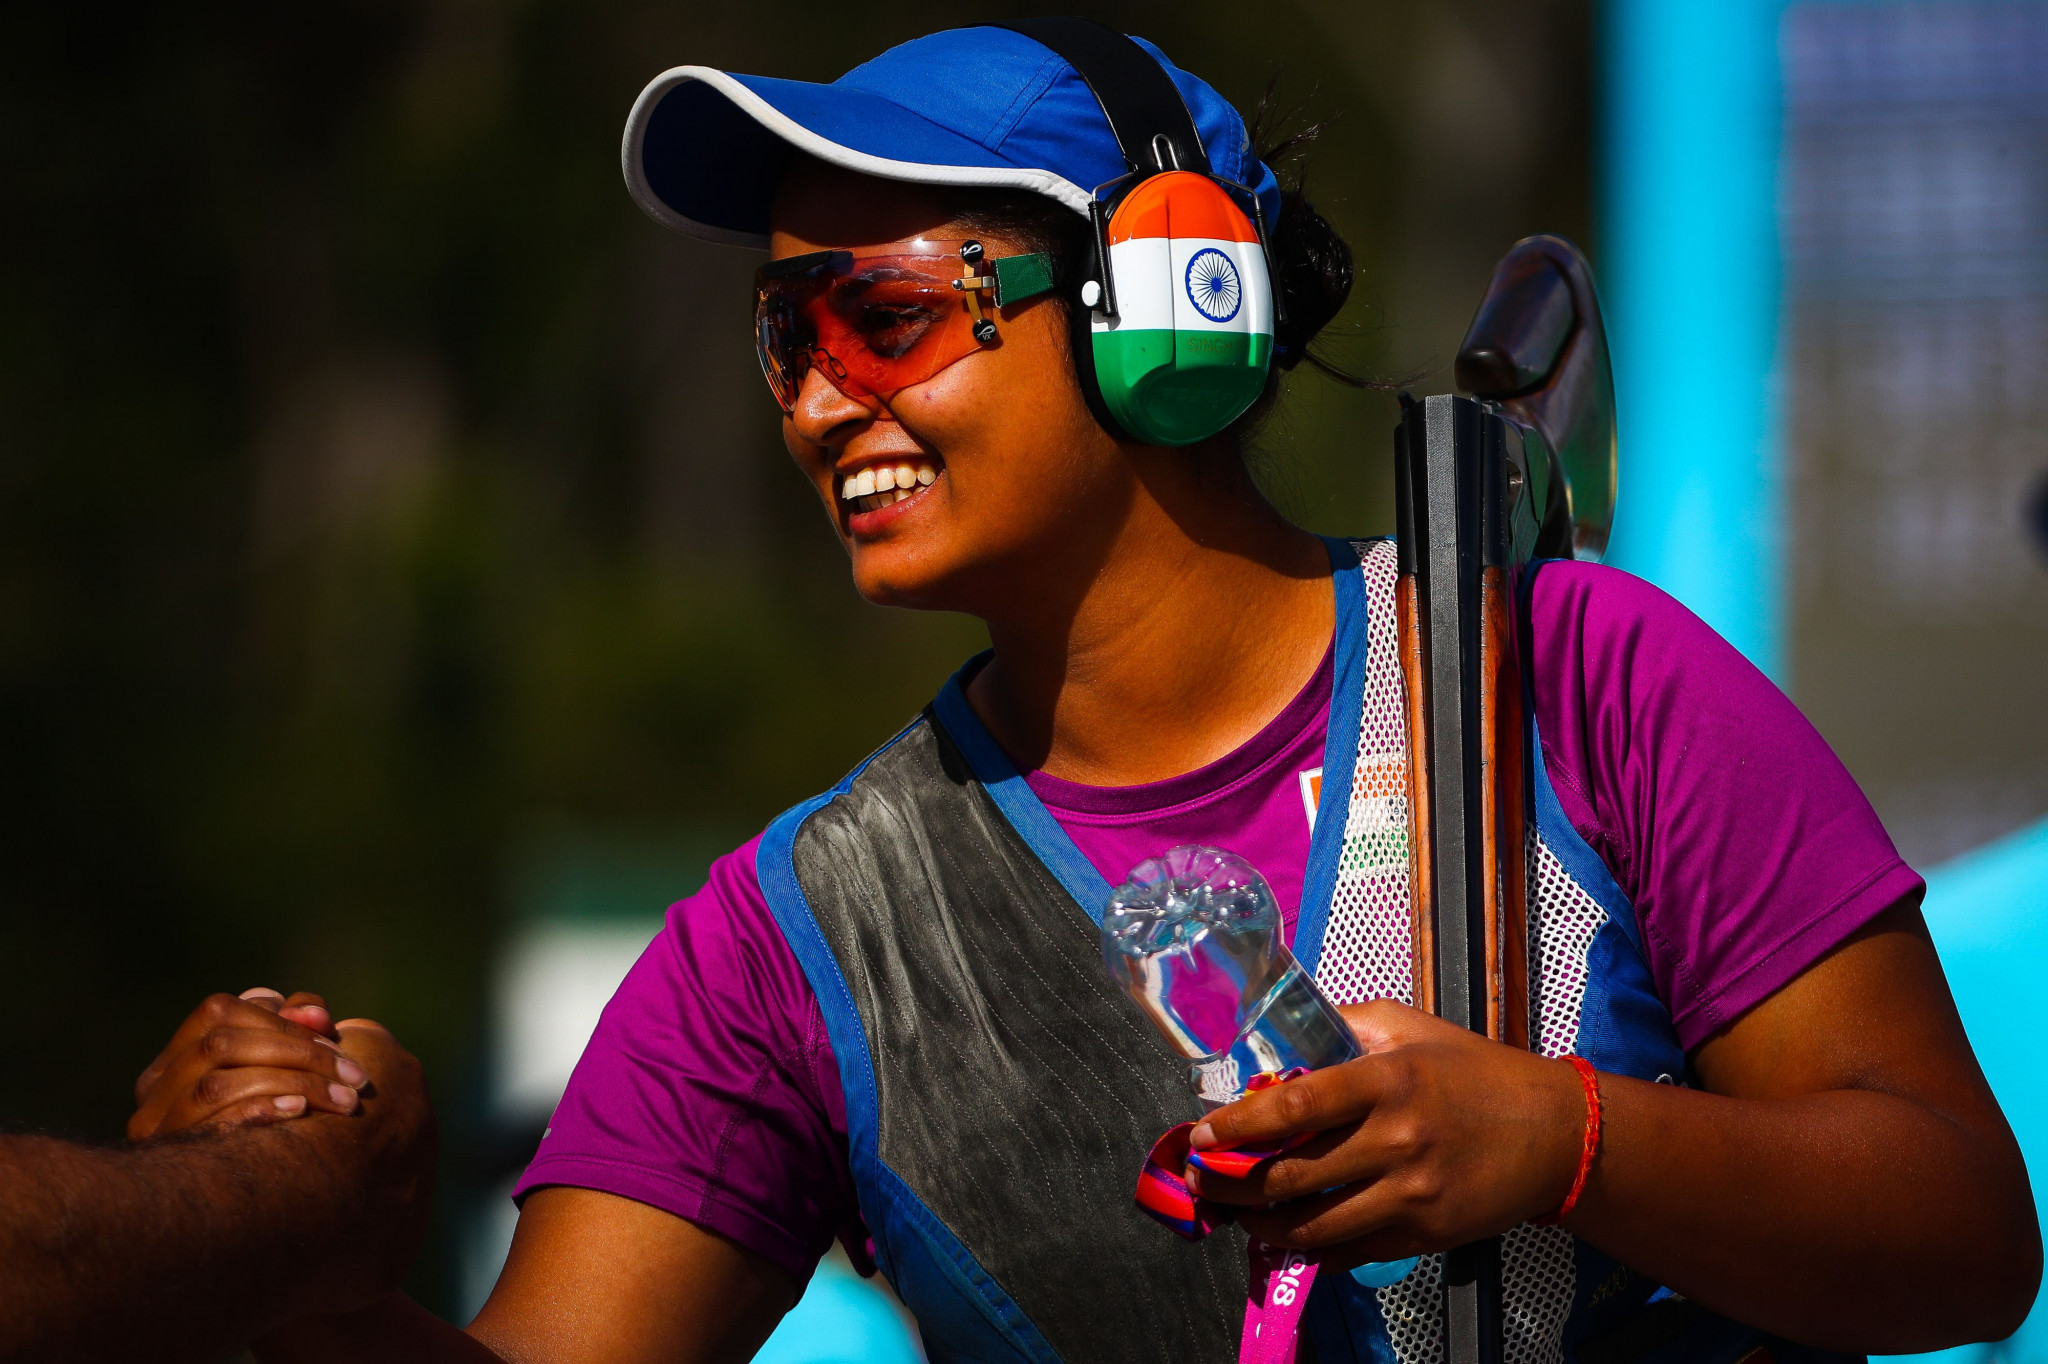 India threatened to boycott Birmingham 2022 over the exclusion of shooting before the CGF said it would consider the country's proposal to include it on the medals table if they hosted the sport, along with archery ©Getty Images